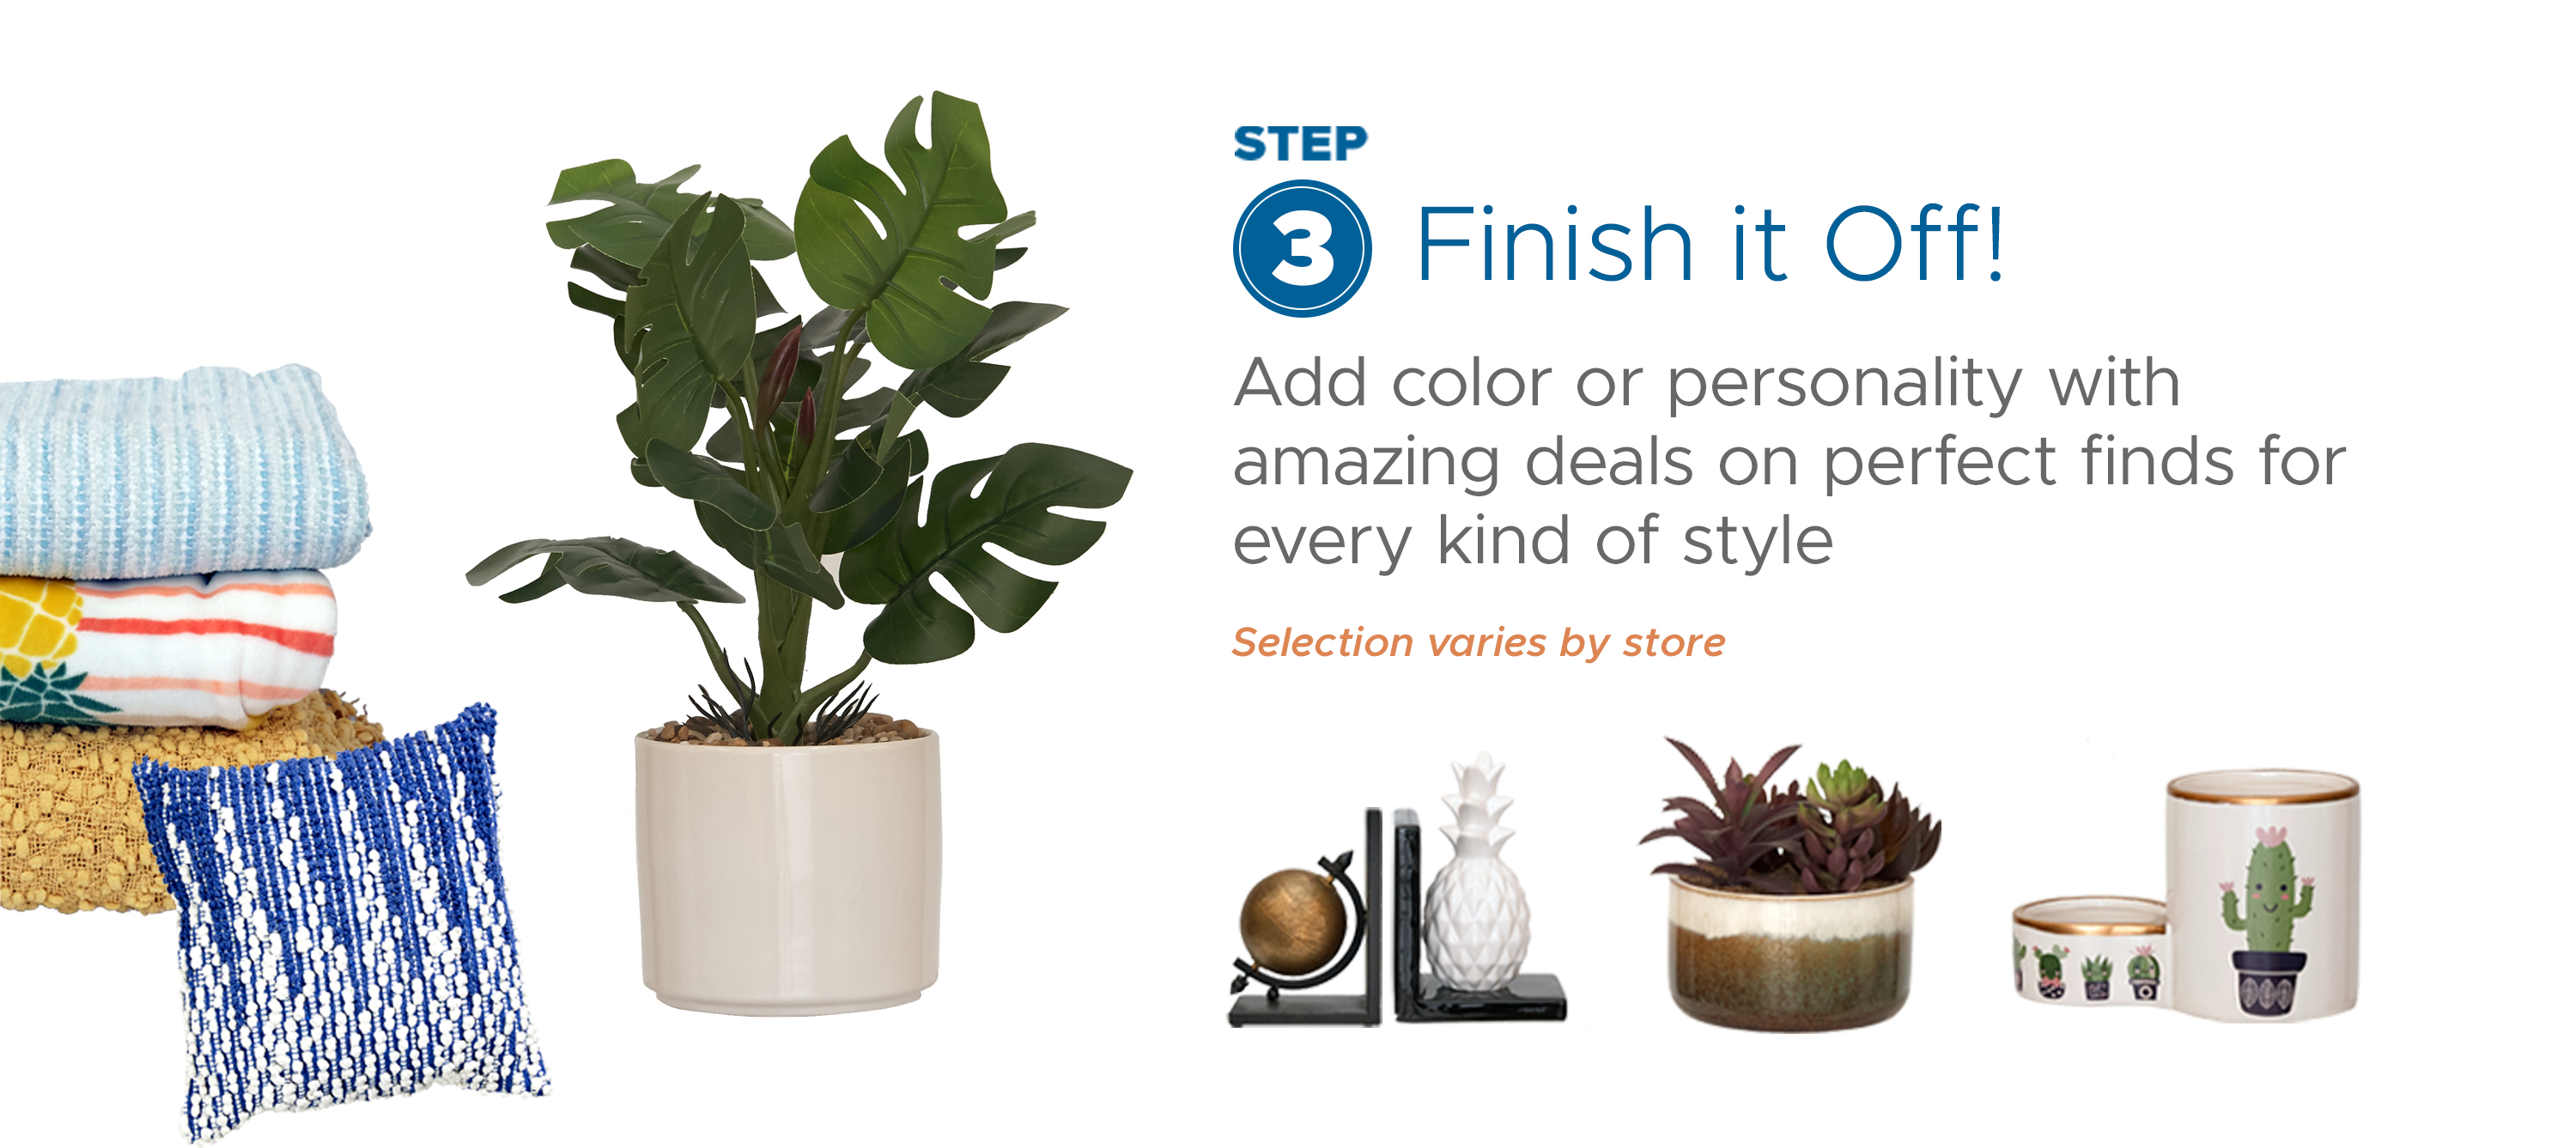 Step 3: Finish It Off! - Add color or personality with amazing deals on perfect finds for every kind of style